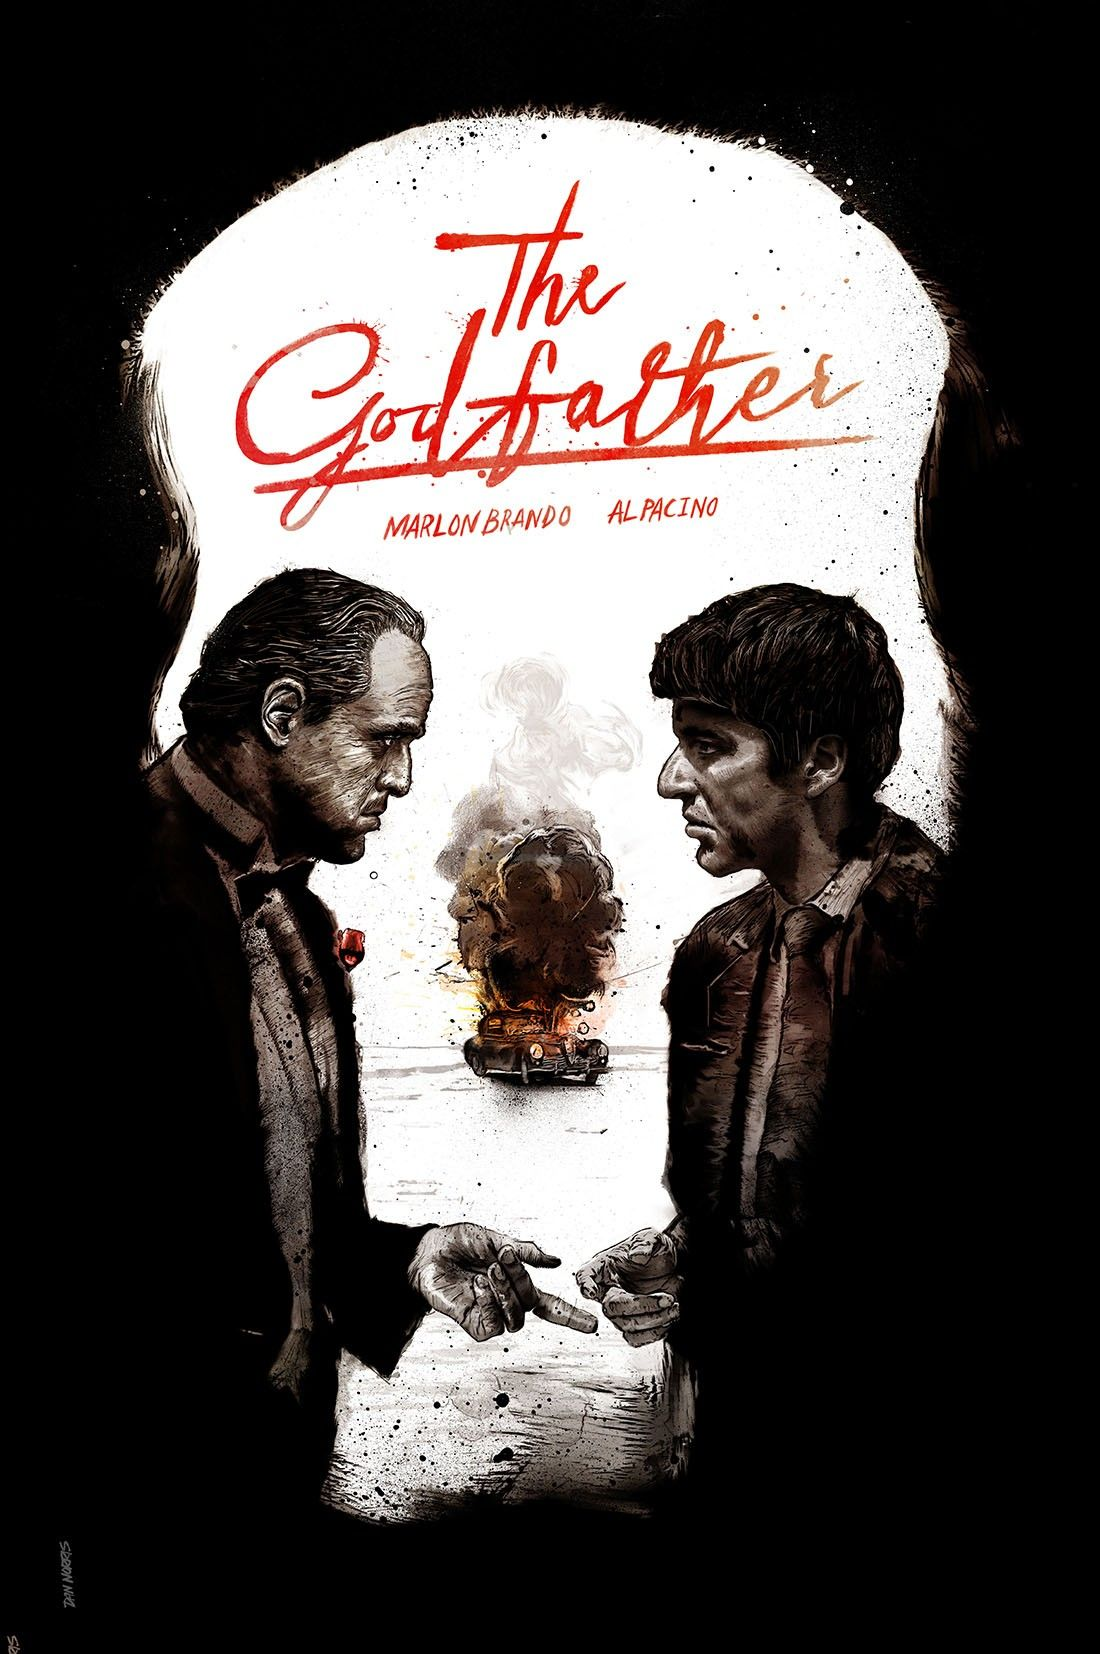 The Godfather (1972) HD Wallpaper From